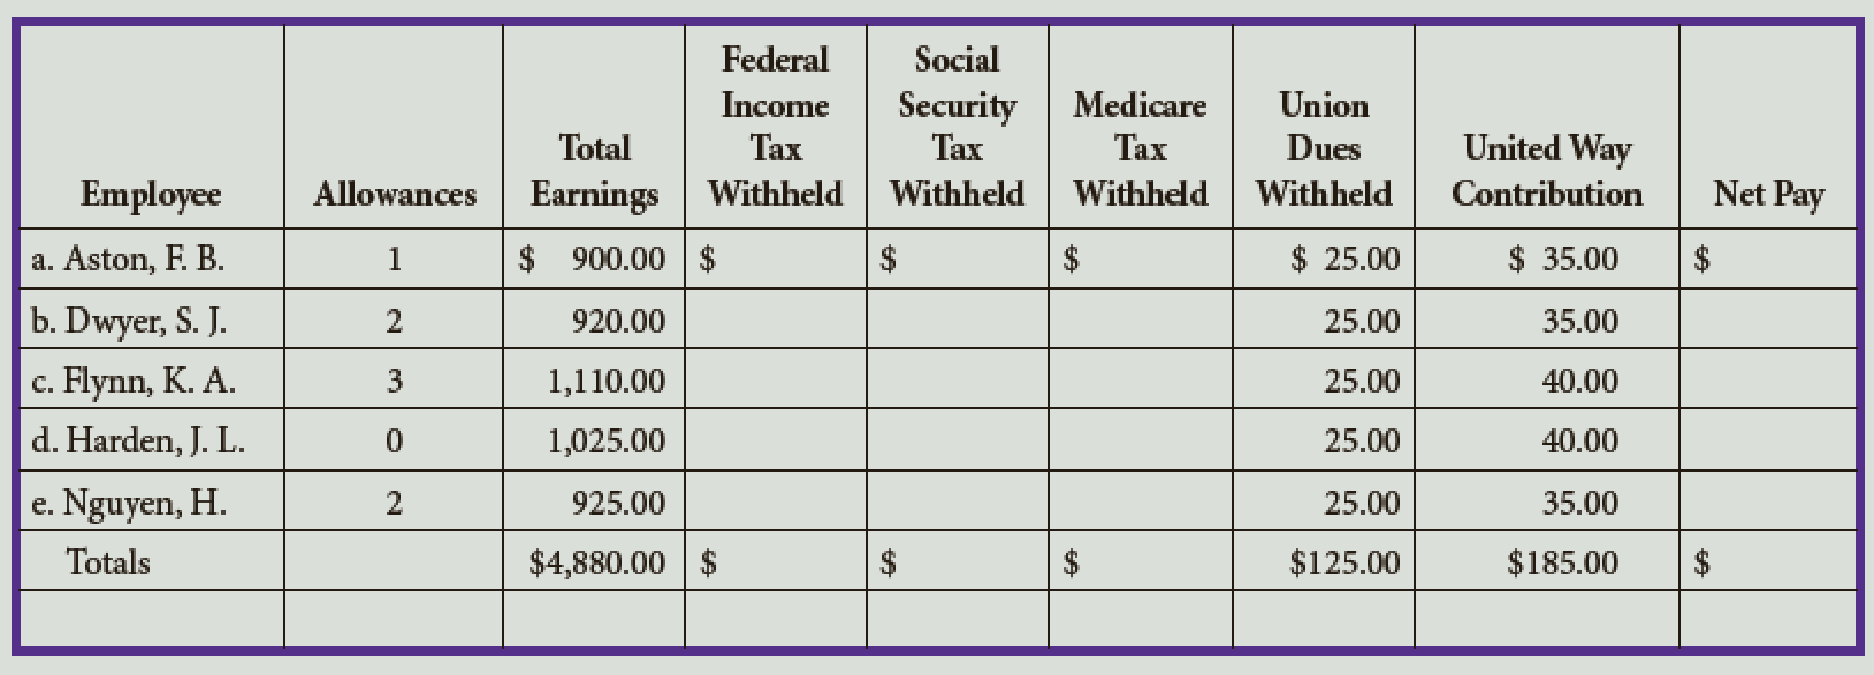 Chapter 7, Problem 3E, Using the income tax withholding table in Figure 3, pages 293294, for each employee of Miller